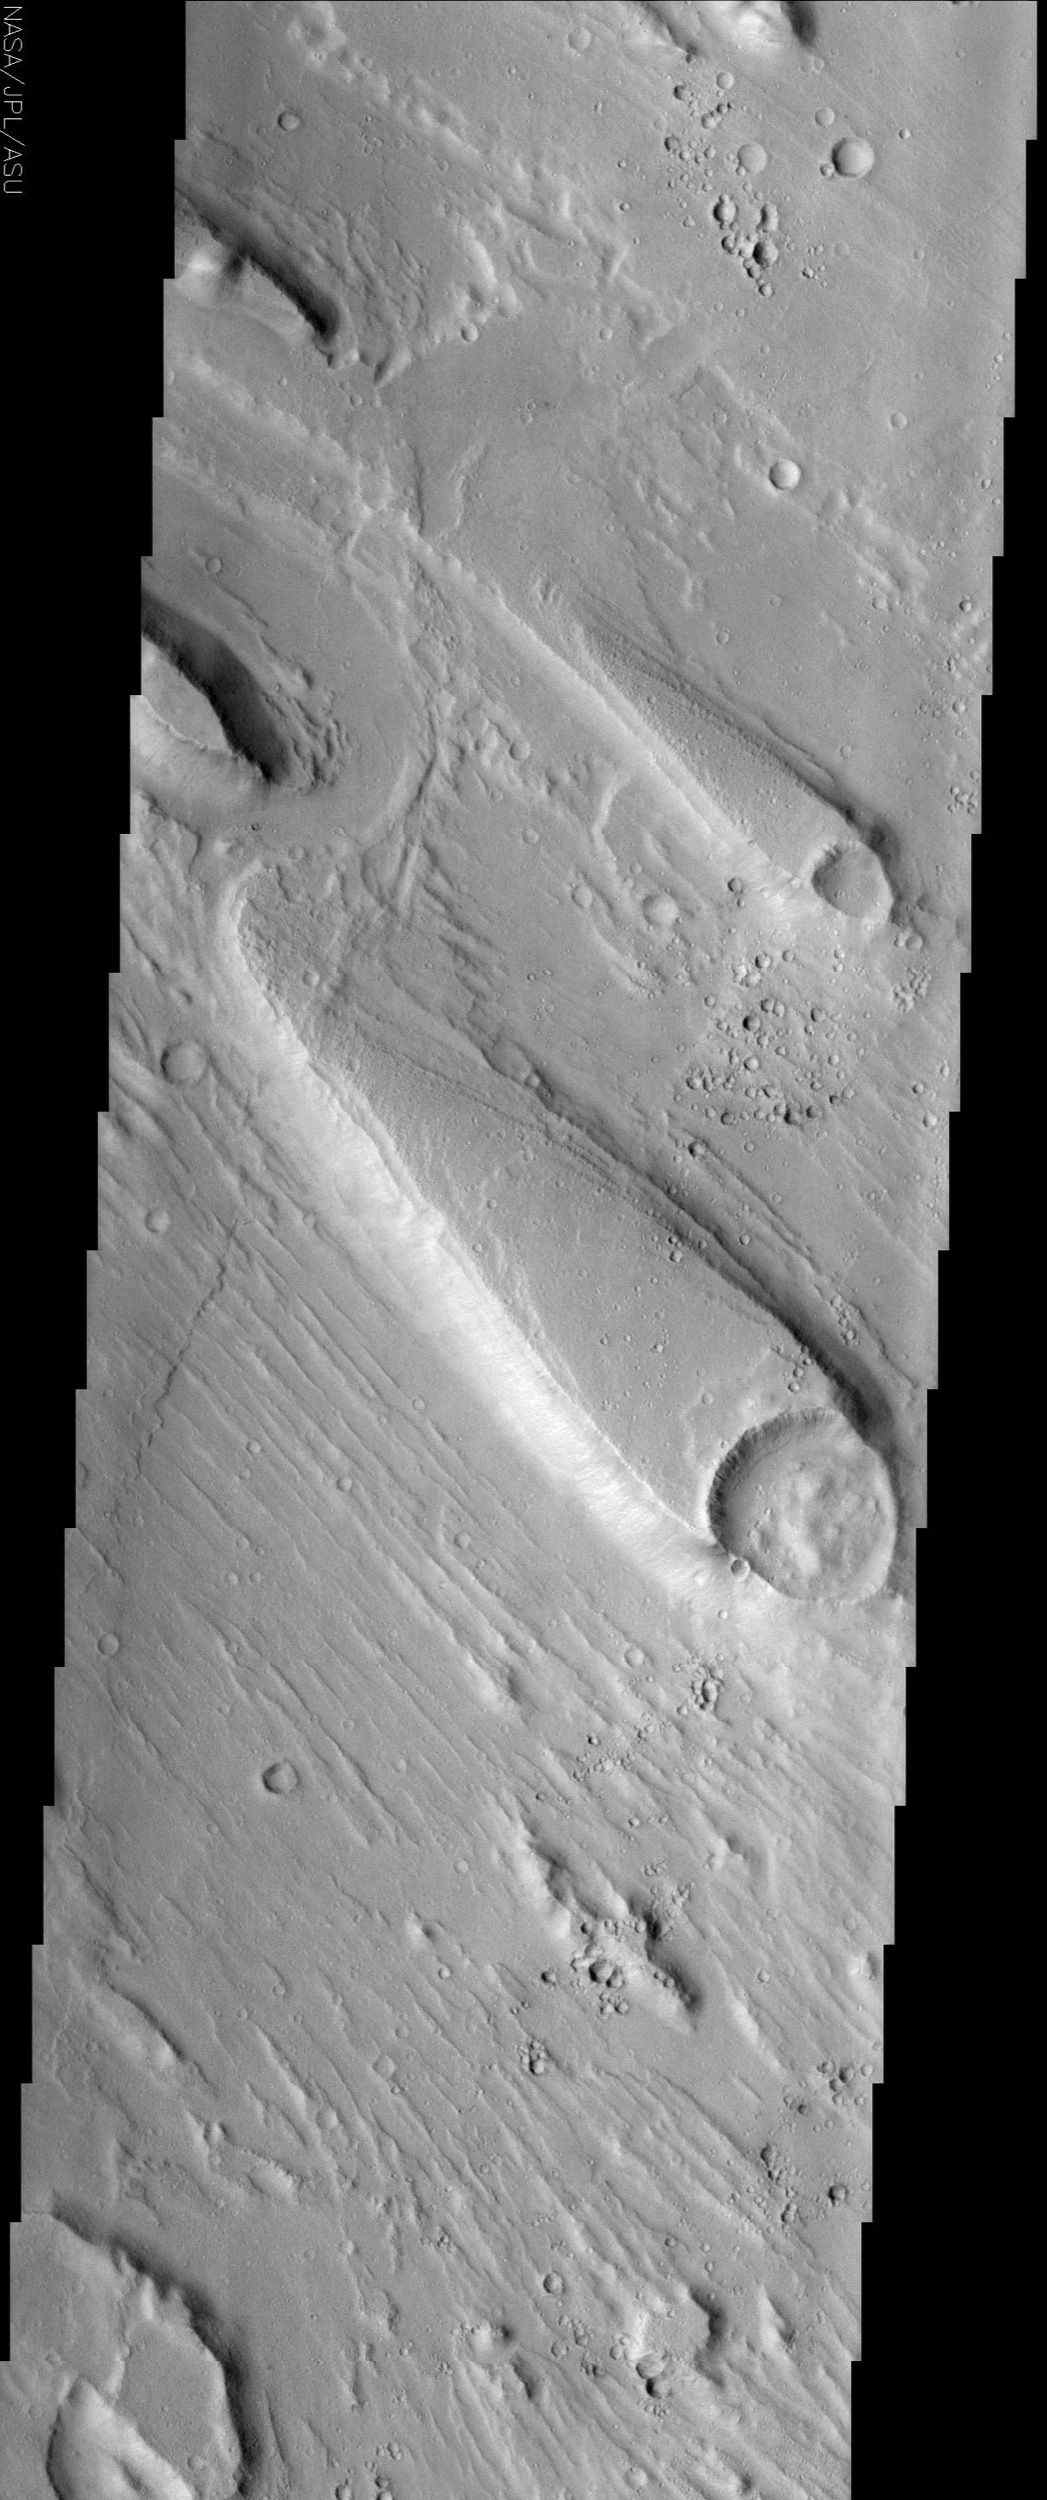 Streamlined islands, like the one shown in this NASA Mars Odyssey image, are one piece of geologic evidence that large quantities of water once flowed across the surface of Mars in the distant past.